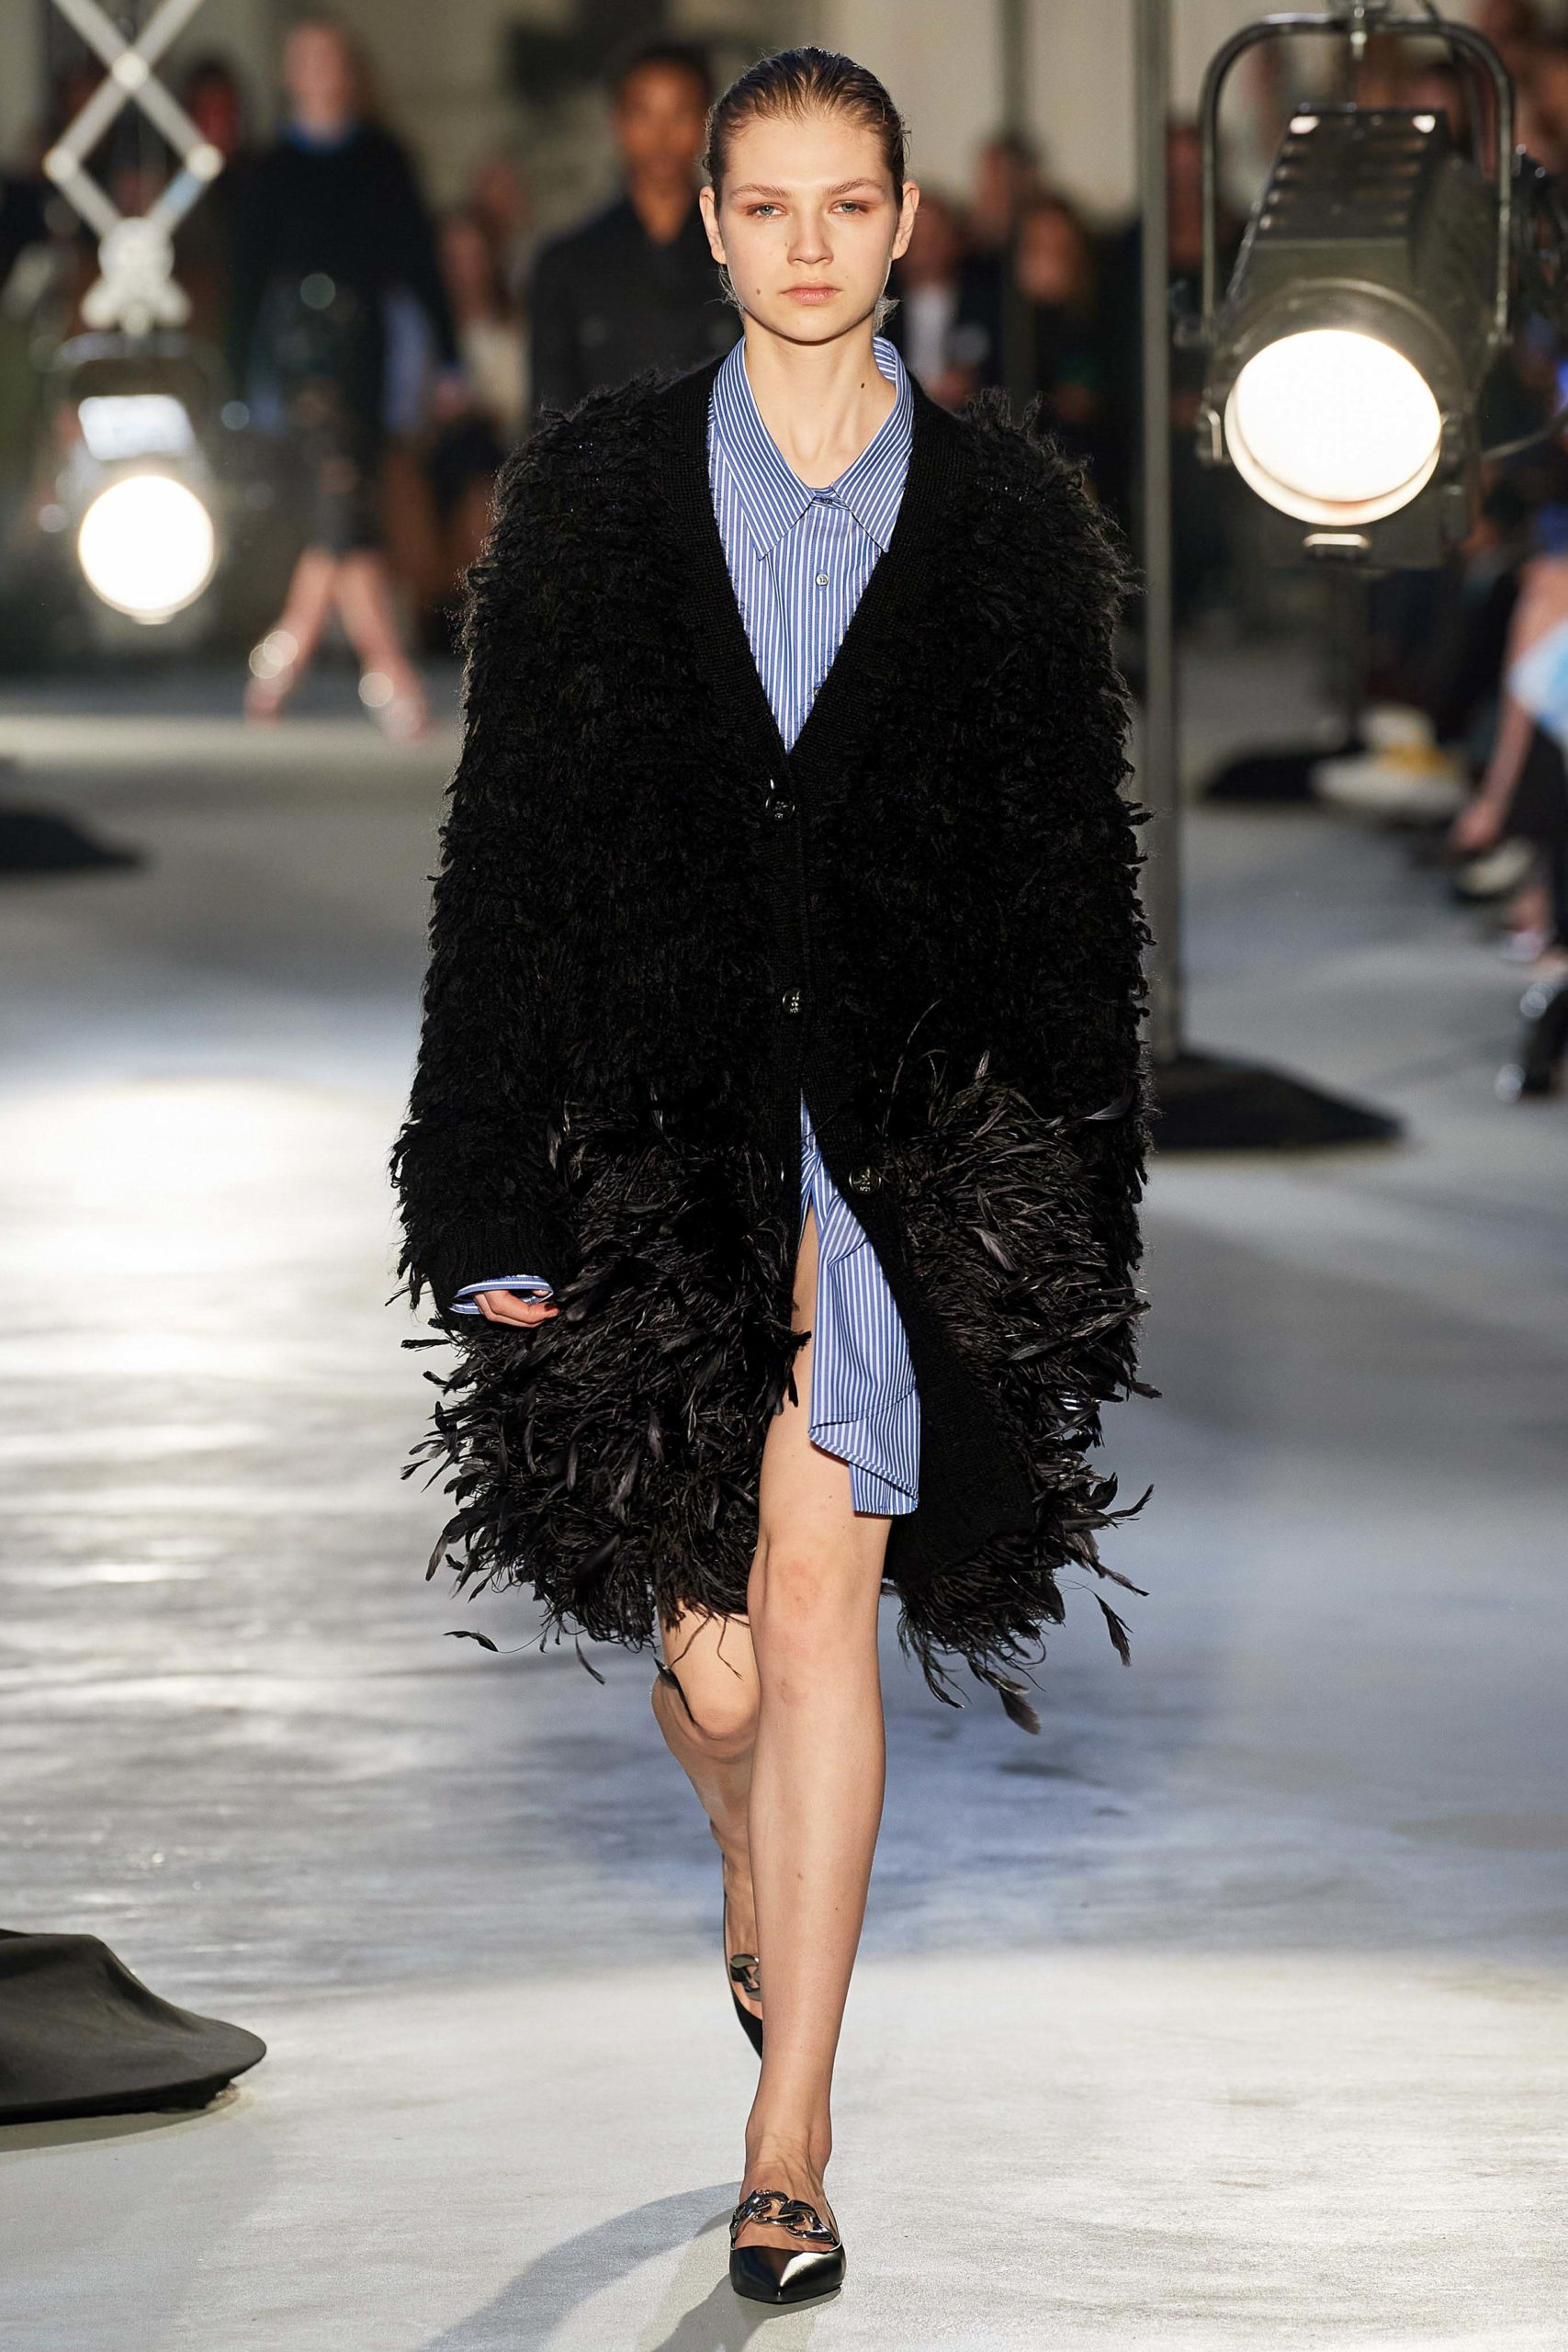 Numero 21 Fall 2020 trends runway coverage Ready To Wear Vogue feather